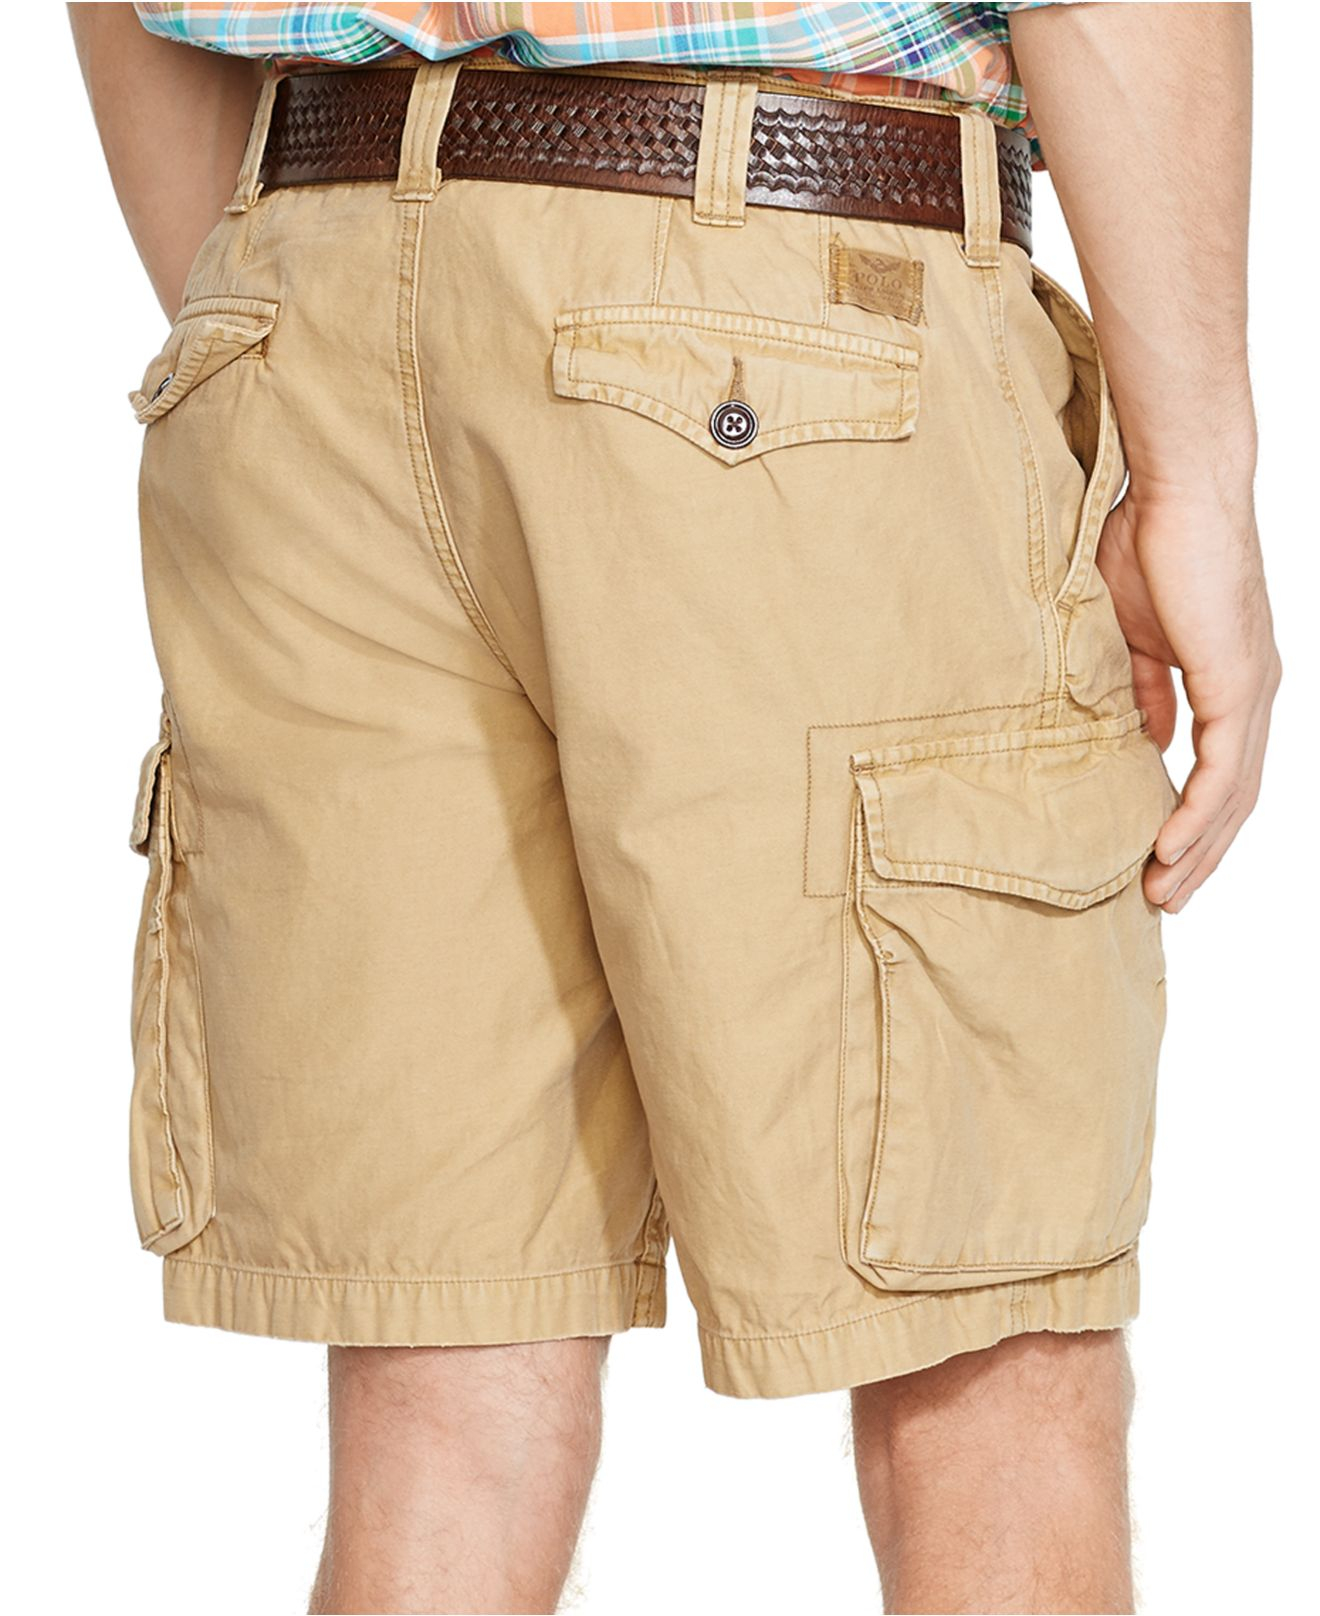 1c90e434a5 Polo Ralph Lauren Classic-fit Commander Cargo Shorts in Natural for ...